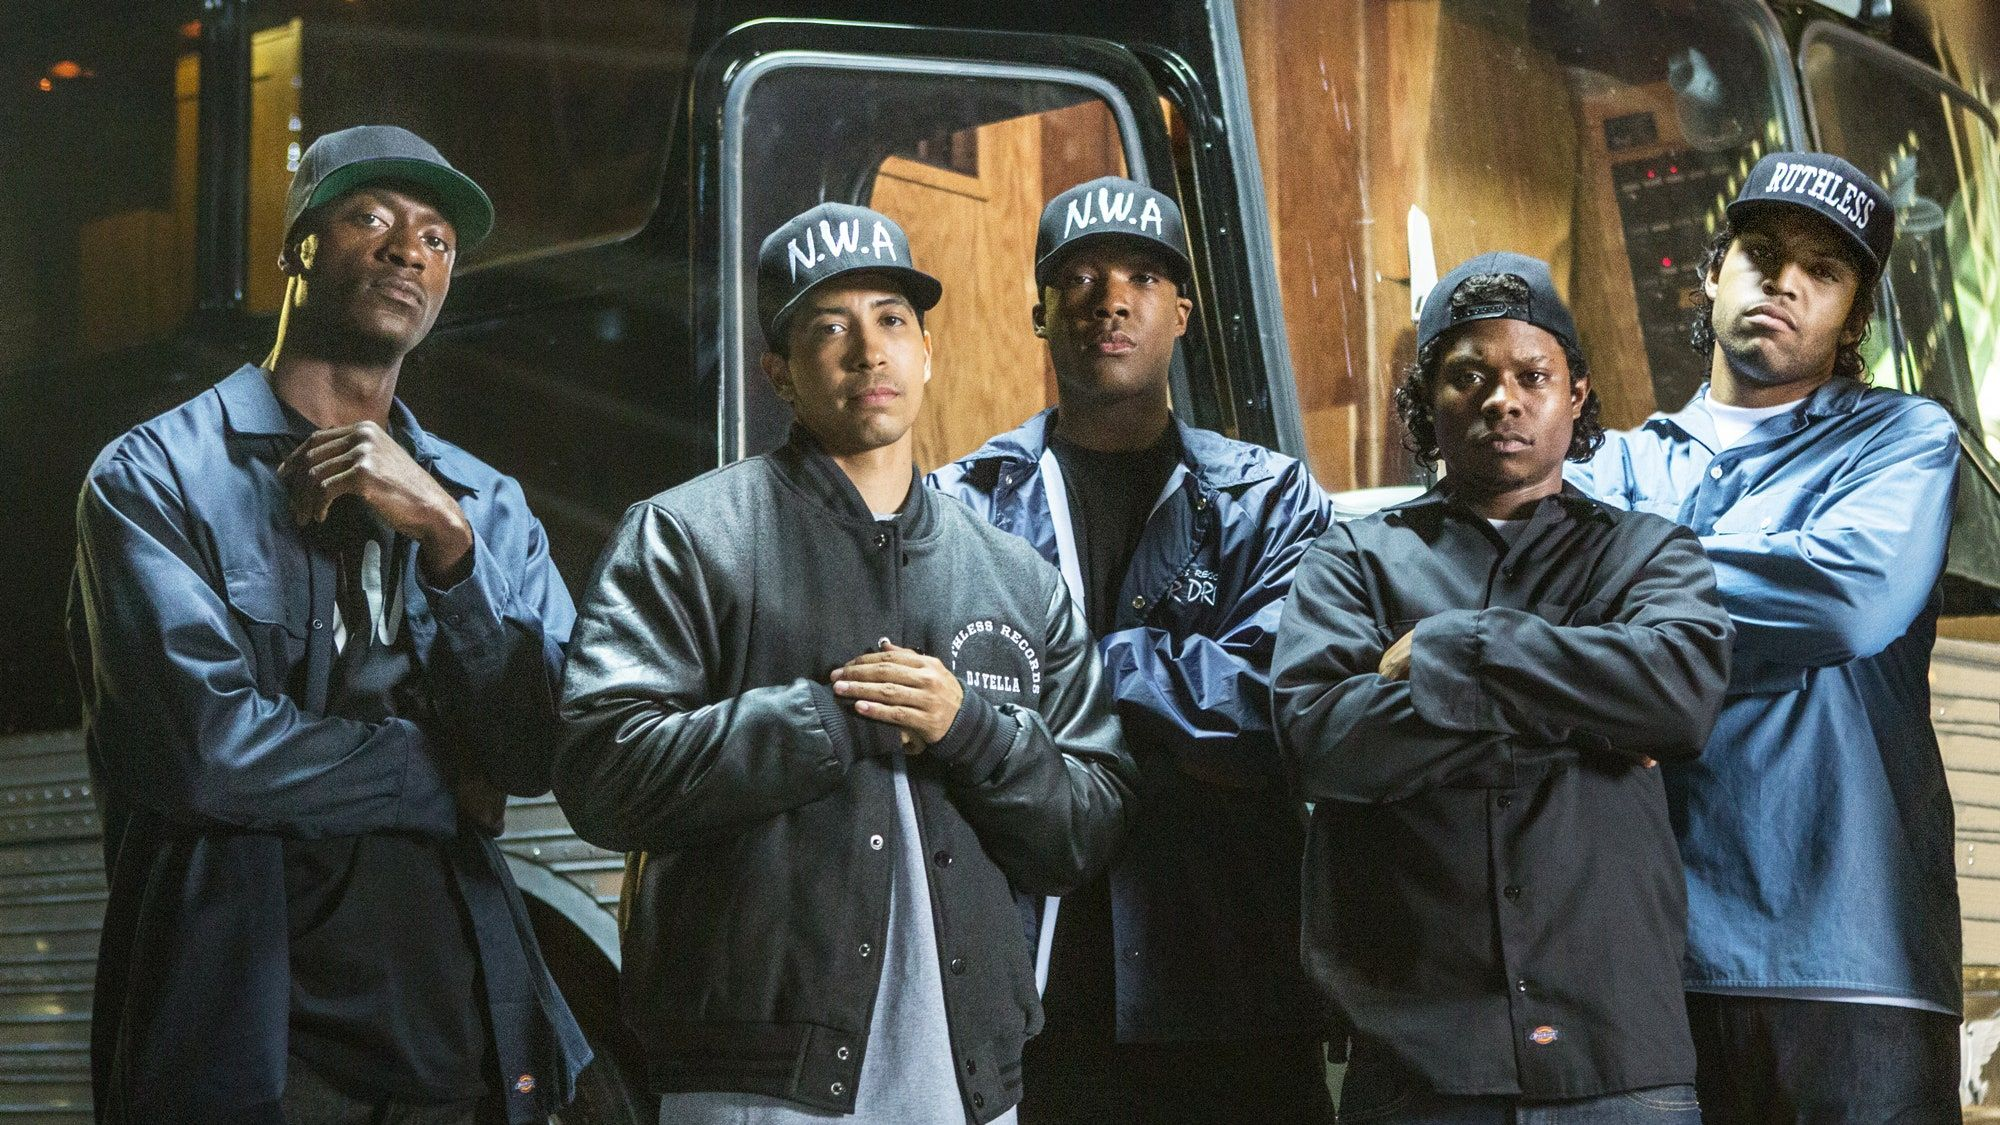 How to Watch Straight Outta Compton on Netflix - Best VPNs to Use